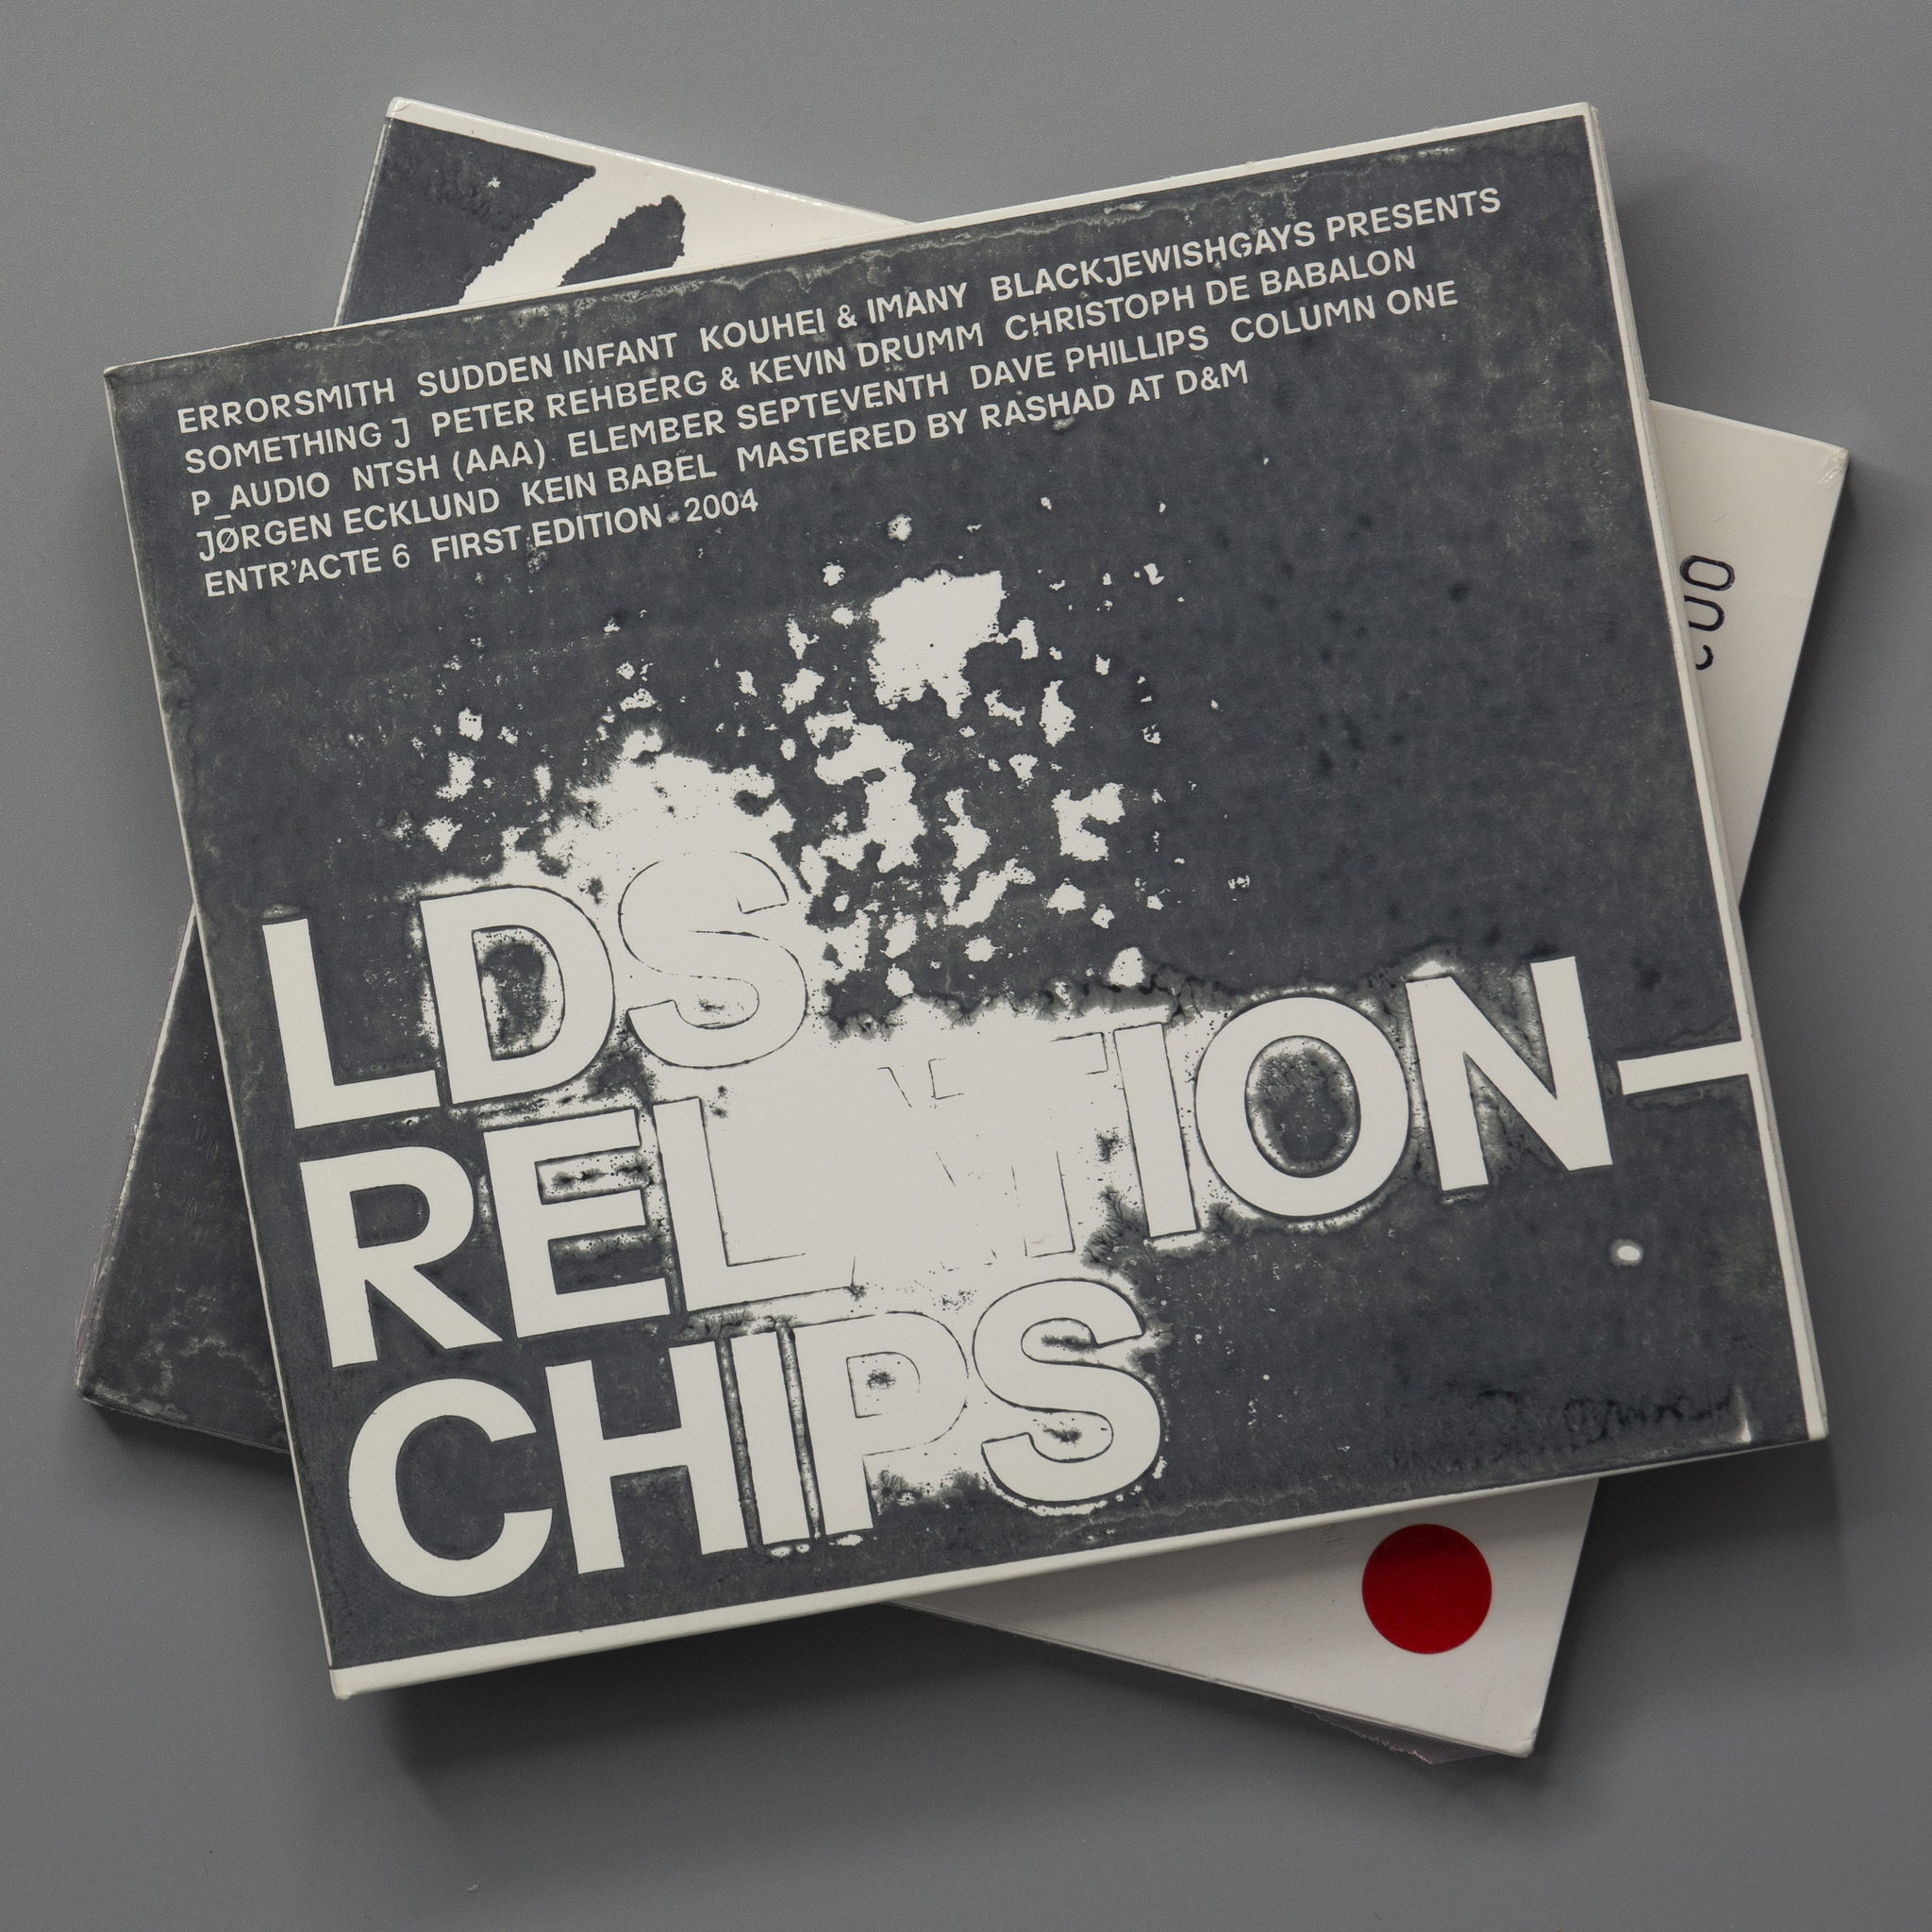 Lds relationchips